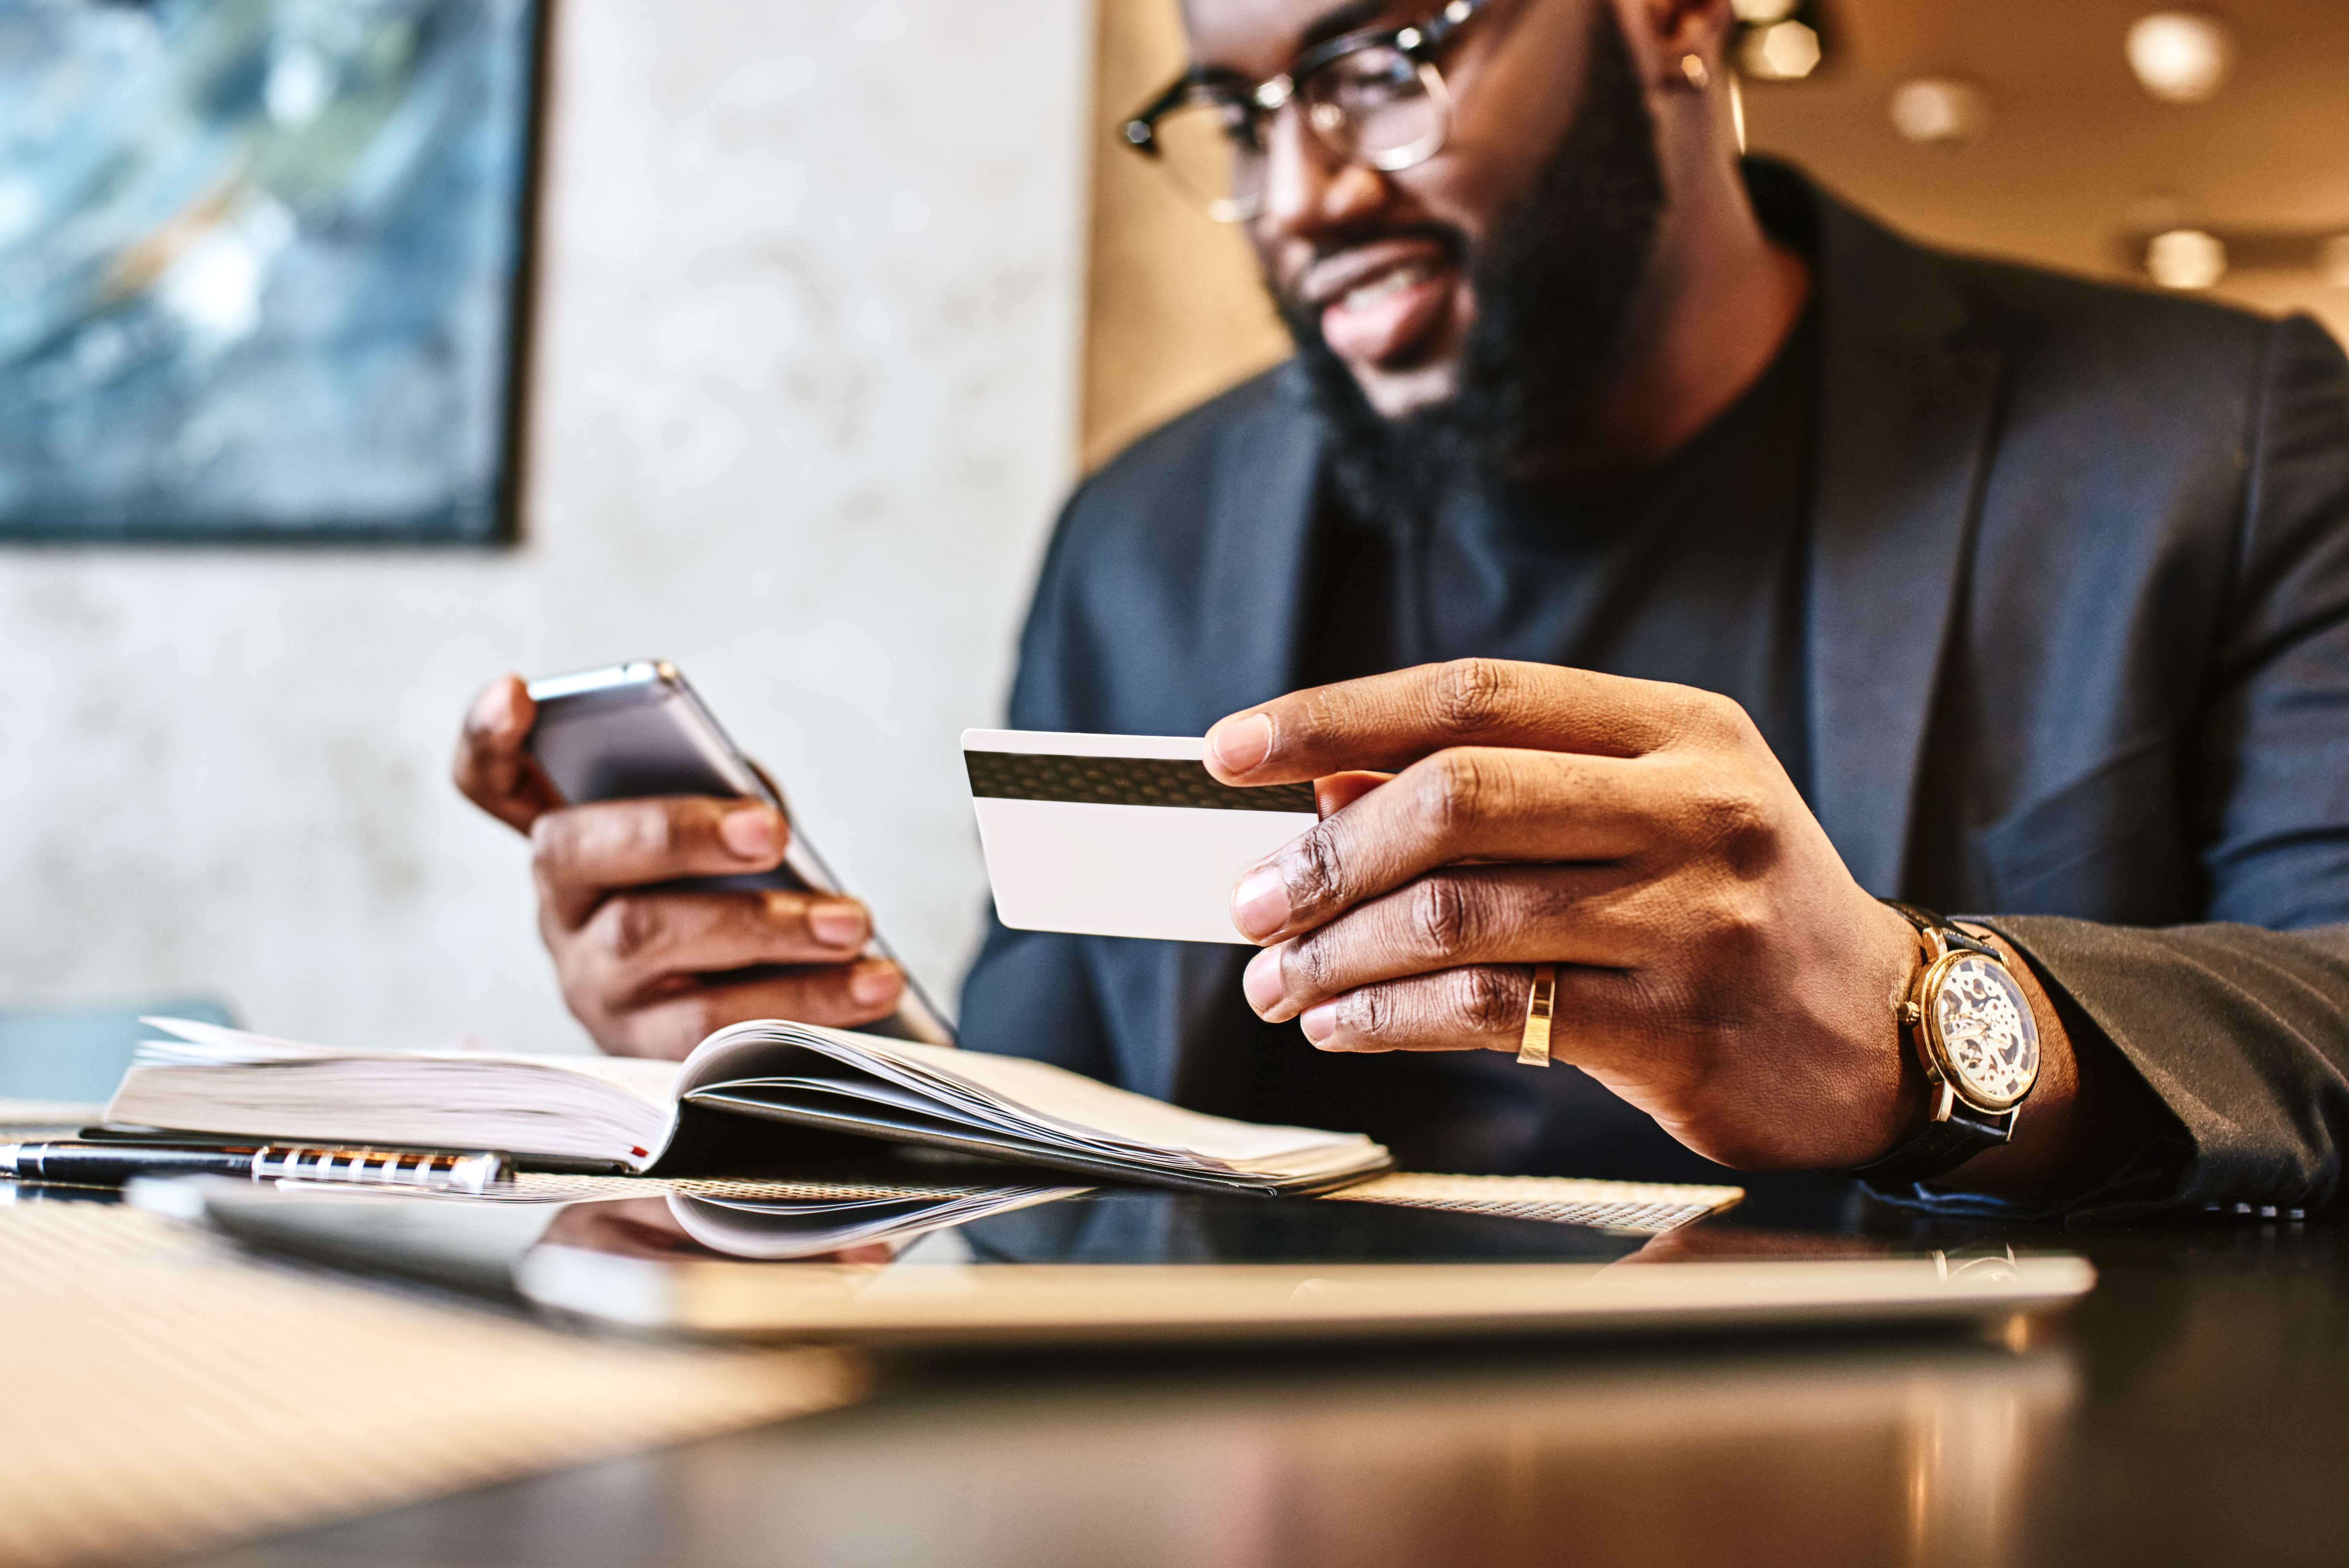 How do credit card rewards work in the U.S.?